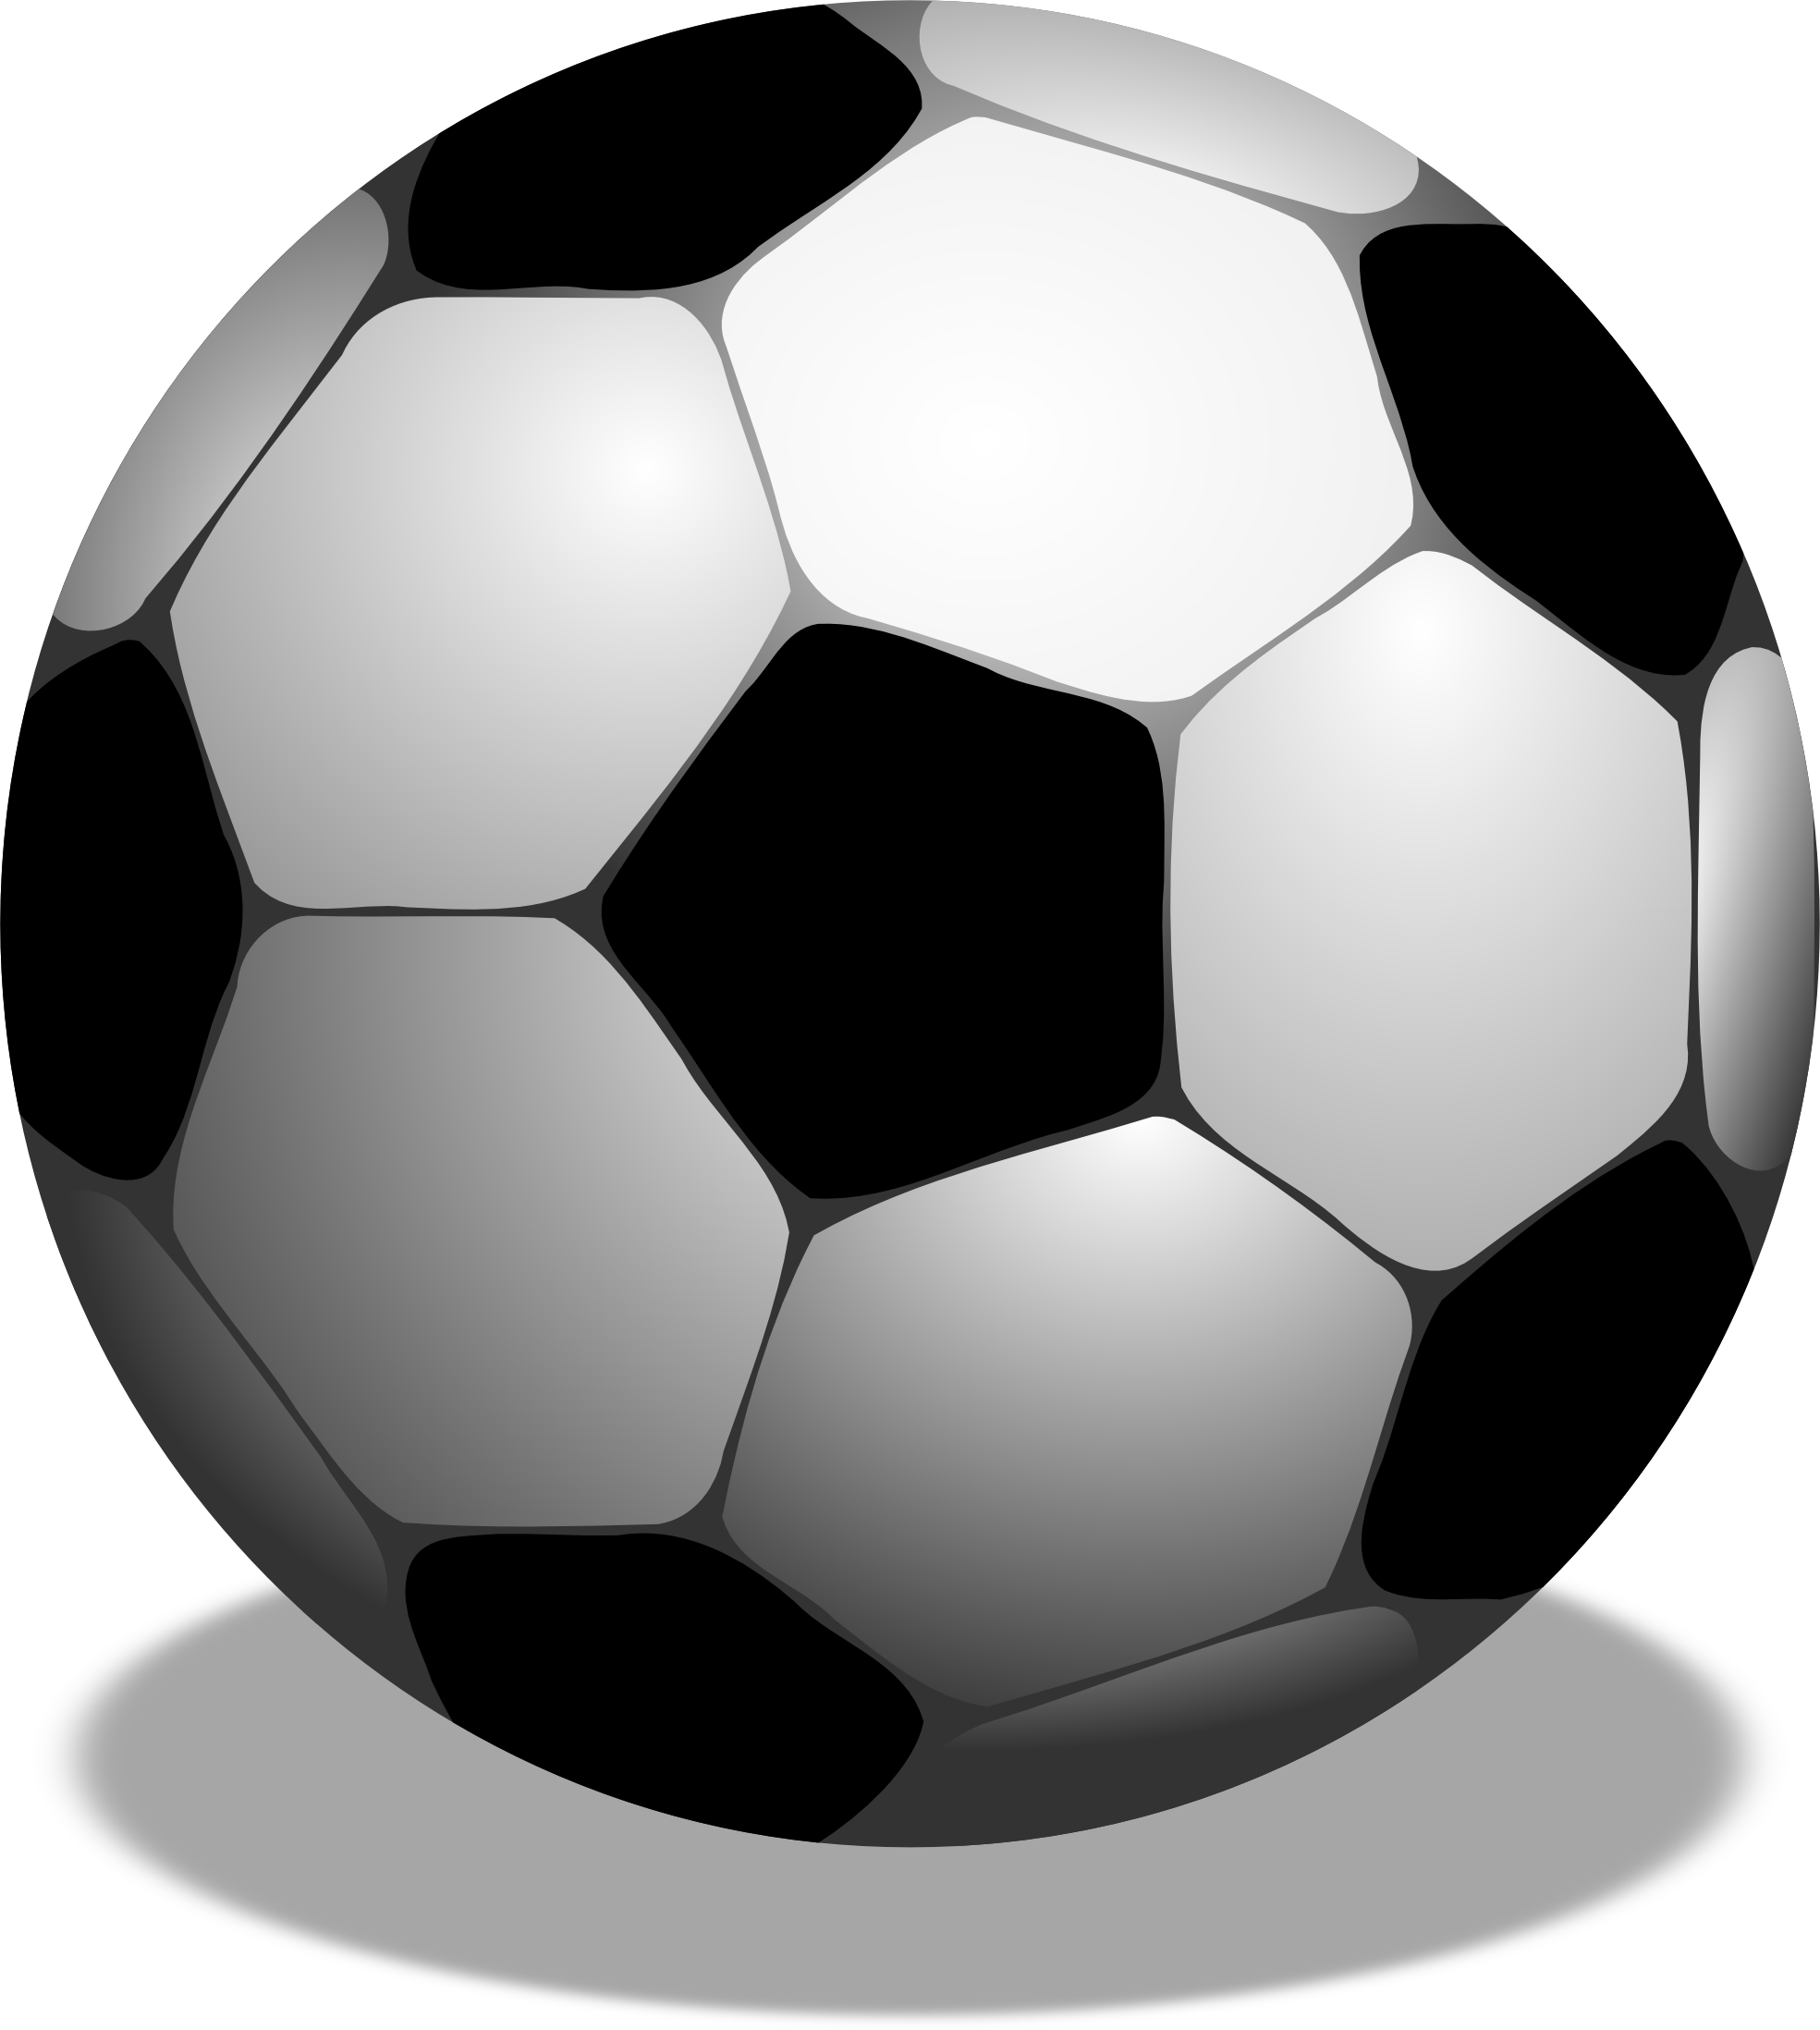 Grass clipart soccer ball. High resolution png free